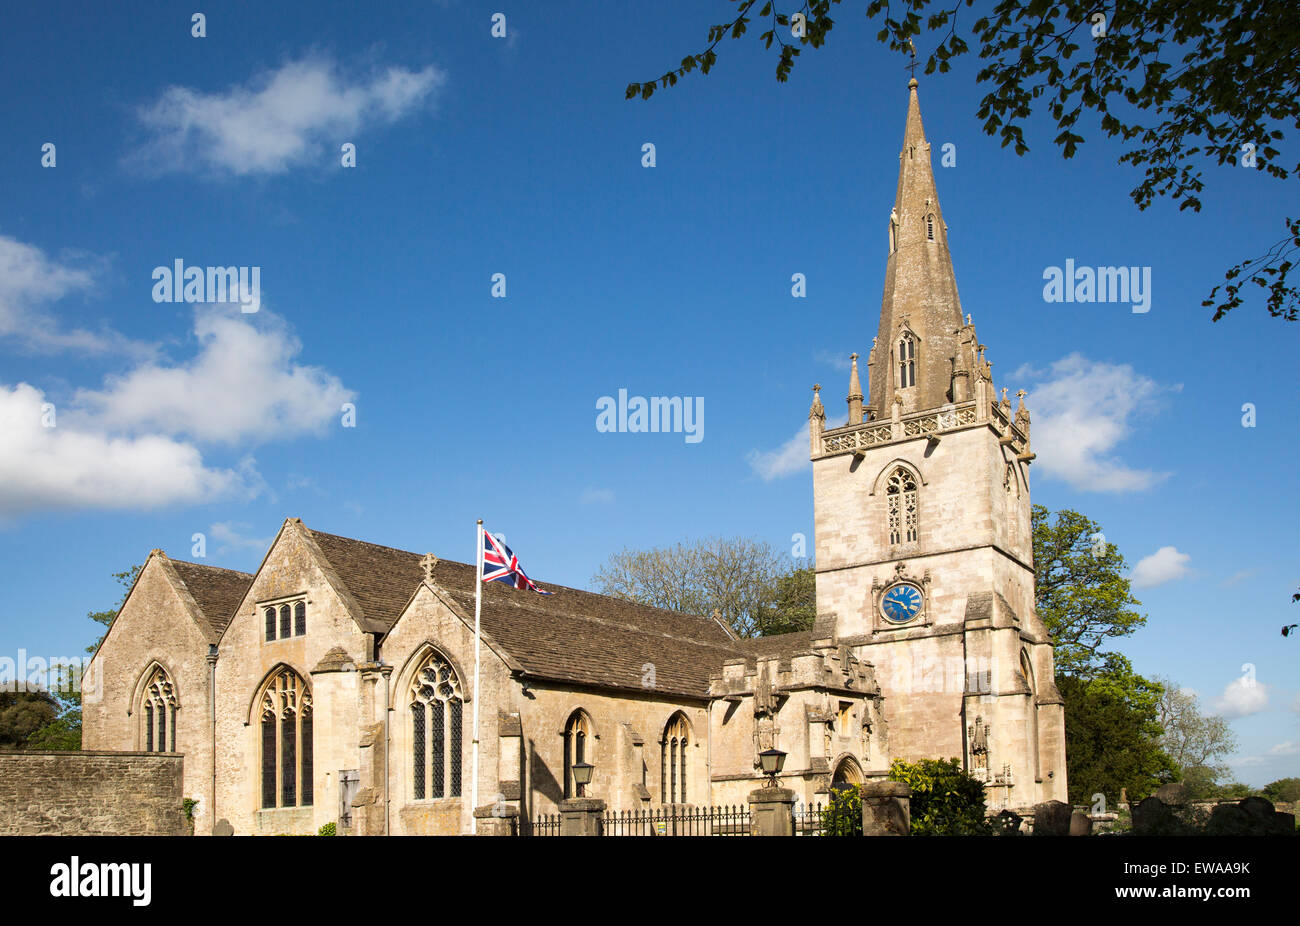 St. Bartholomew's church, Corsham, Wiltshire, England, UK Stock Photo